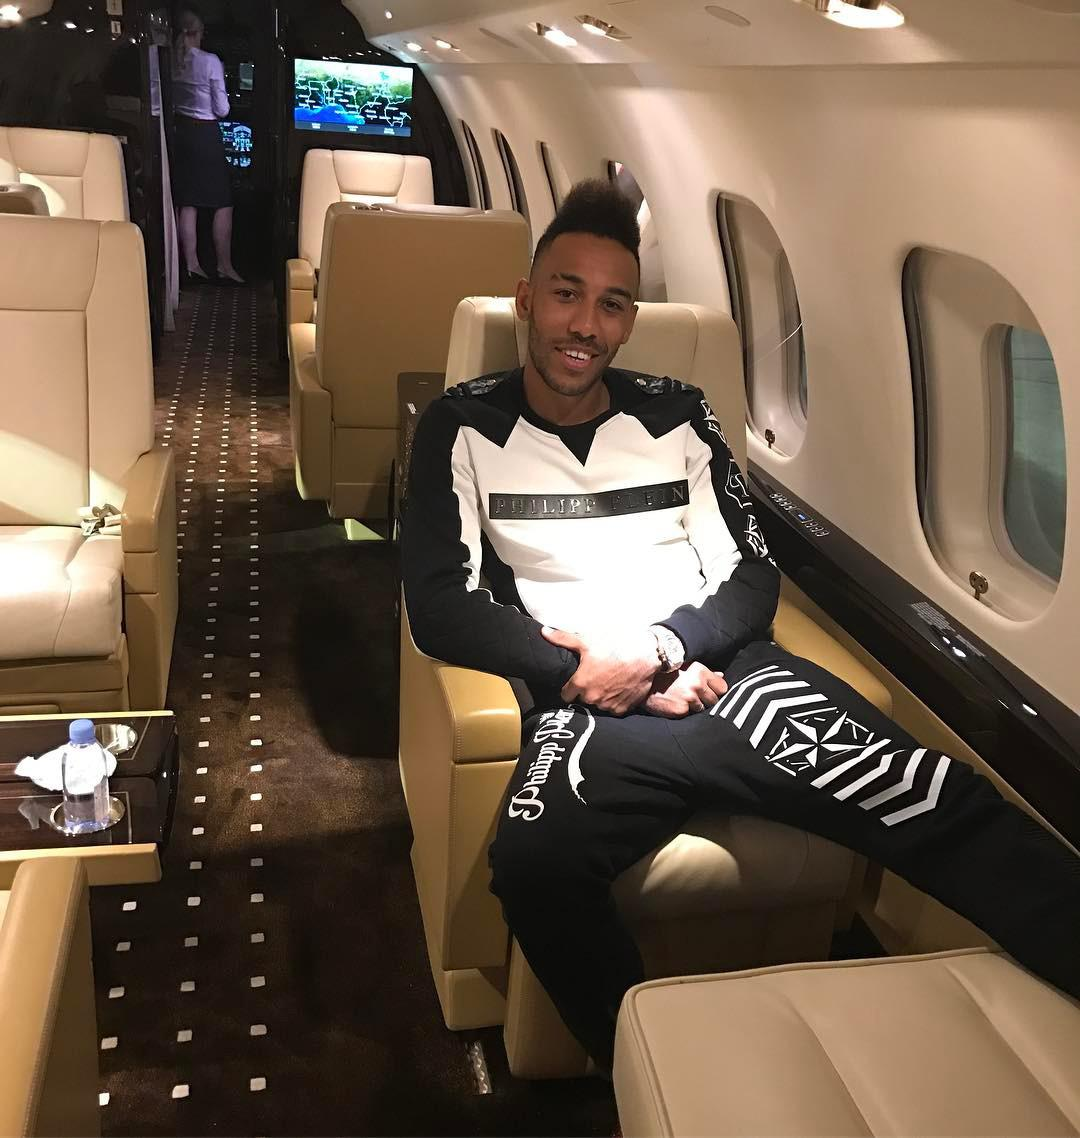 Pierre-Emerick Aubameyang has got used to living the life of absolute luxury